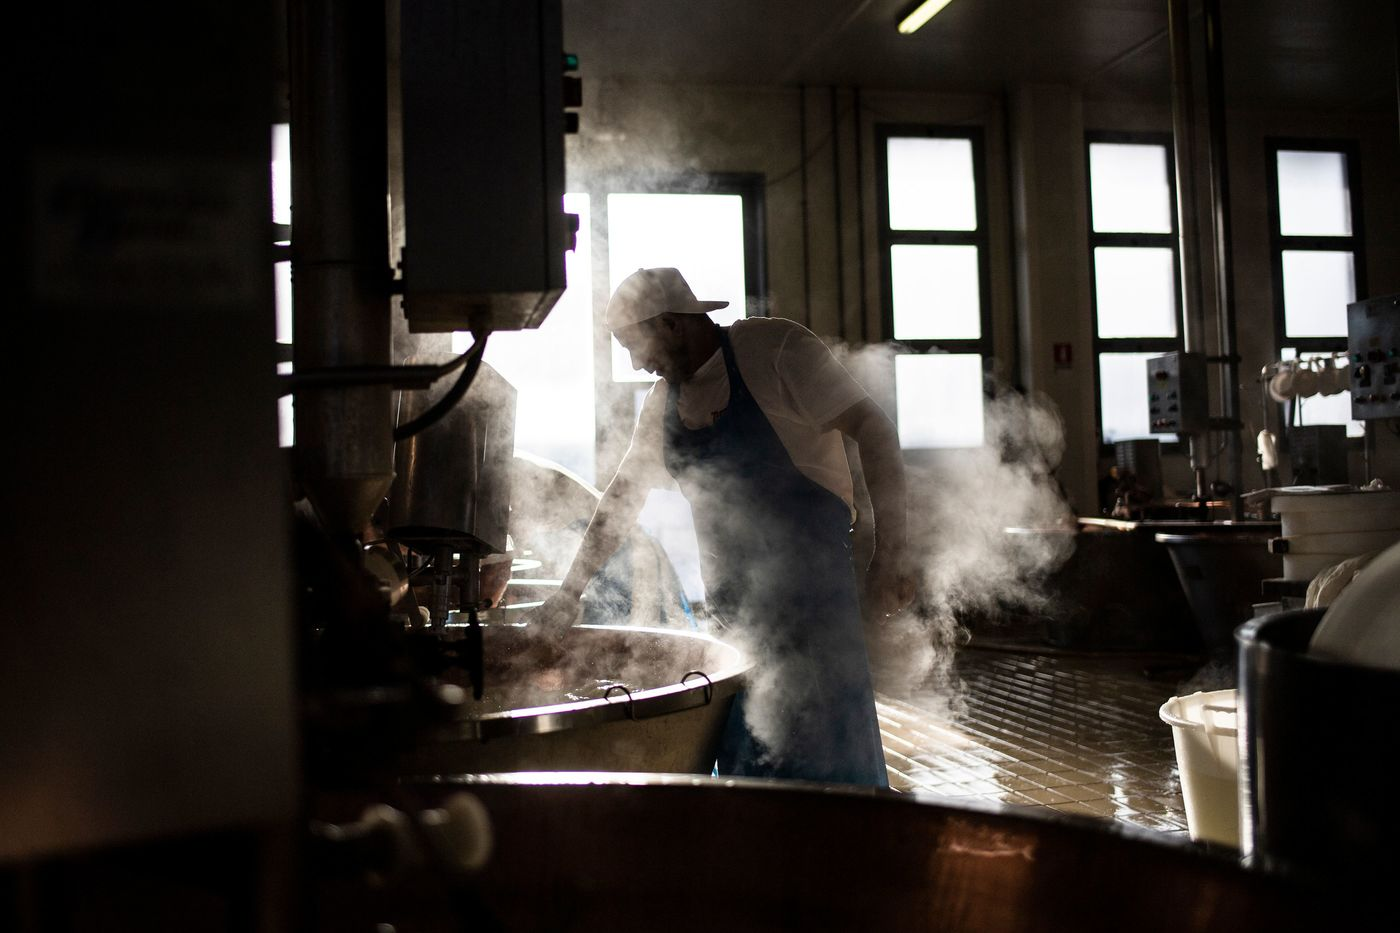 Cheesemaker Singh Taljit, a member of the Indian Sikh community, works at a Parmigiano Reggiano factory in the Dall'Aglio Farm on September 1, 2018 in Gattatico, near Reggio Emilia. - Cheesemaker Singh Taljit, who has been doing this job for 16 years makes cheese according to the millennial tradition method.  Italy has a large hidden community of Sikh migrants mostly present in farms in the North of Italy, working as agricultural workers. (Photo by MARCO BERTORELLO / AFP)